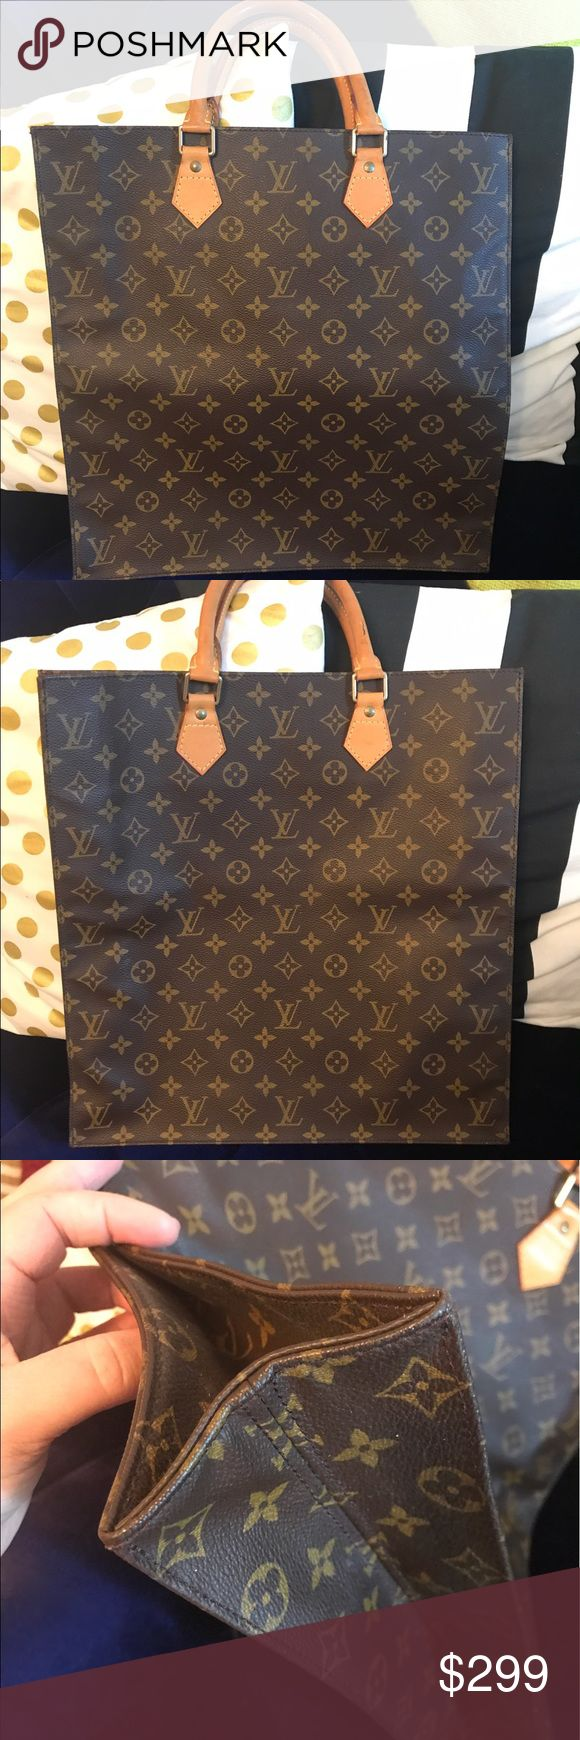 Authentic Louis Vuitton Sac Plat Shopper Tote Exterior is in fantastic condition. However inside is peeling and lining will need to be fixed. Louis Vuitton Bags Totes